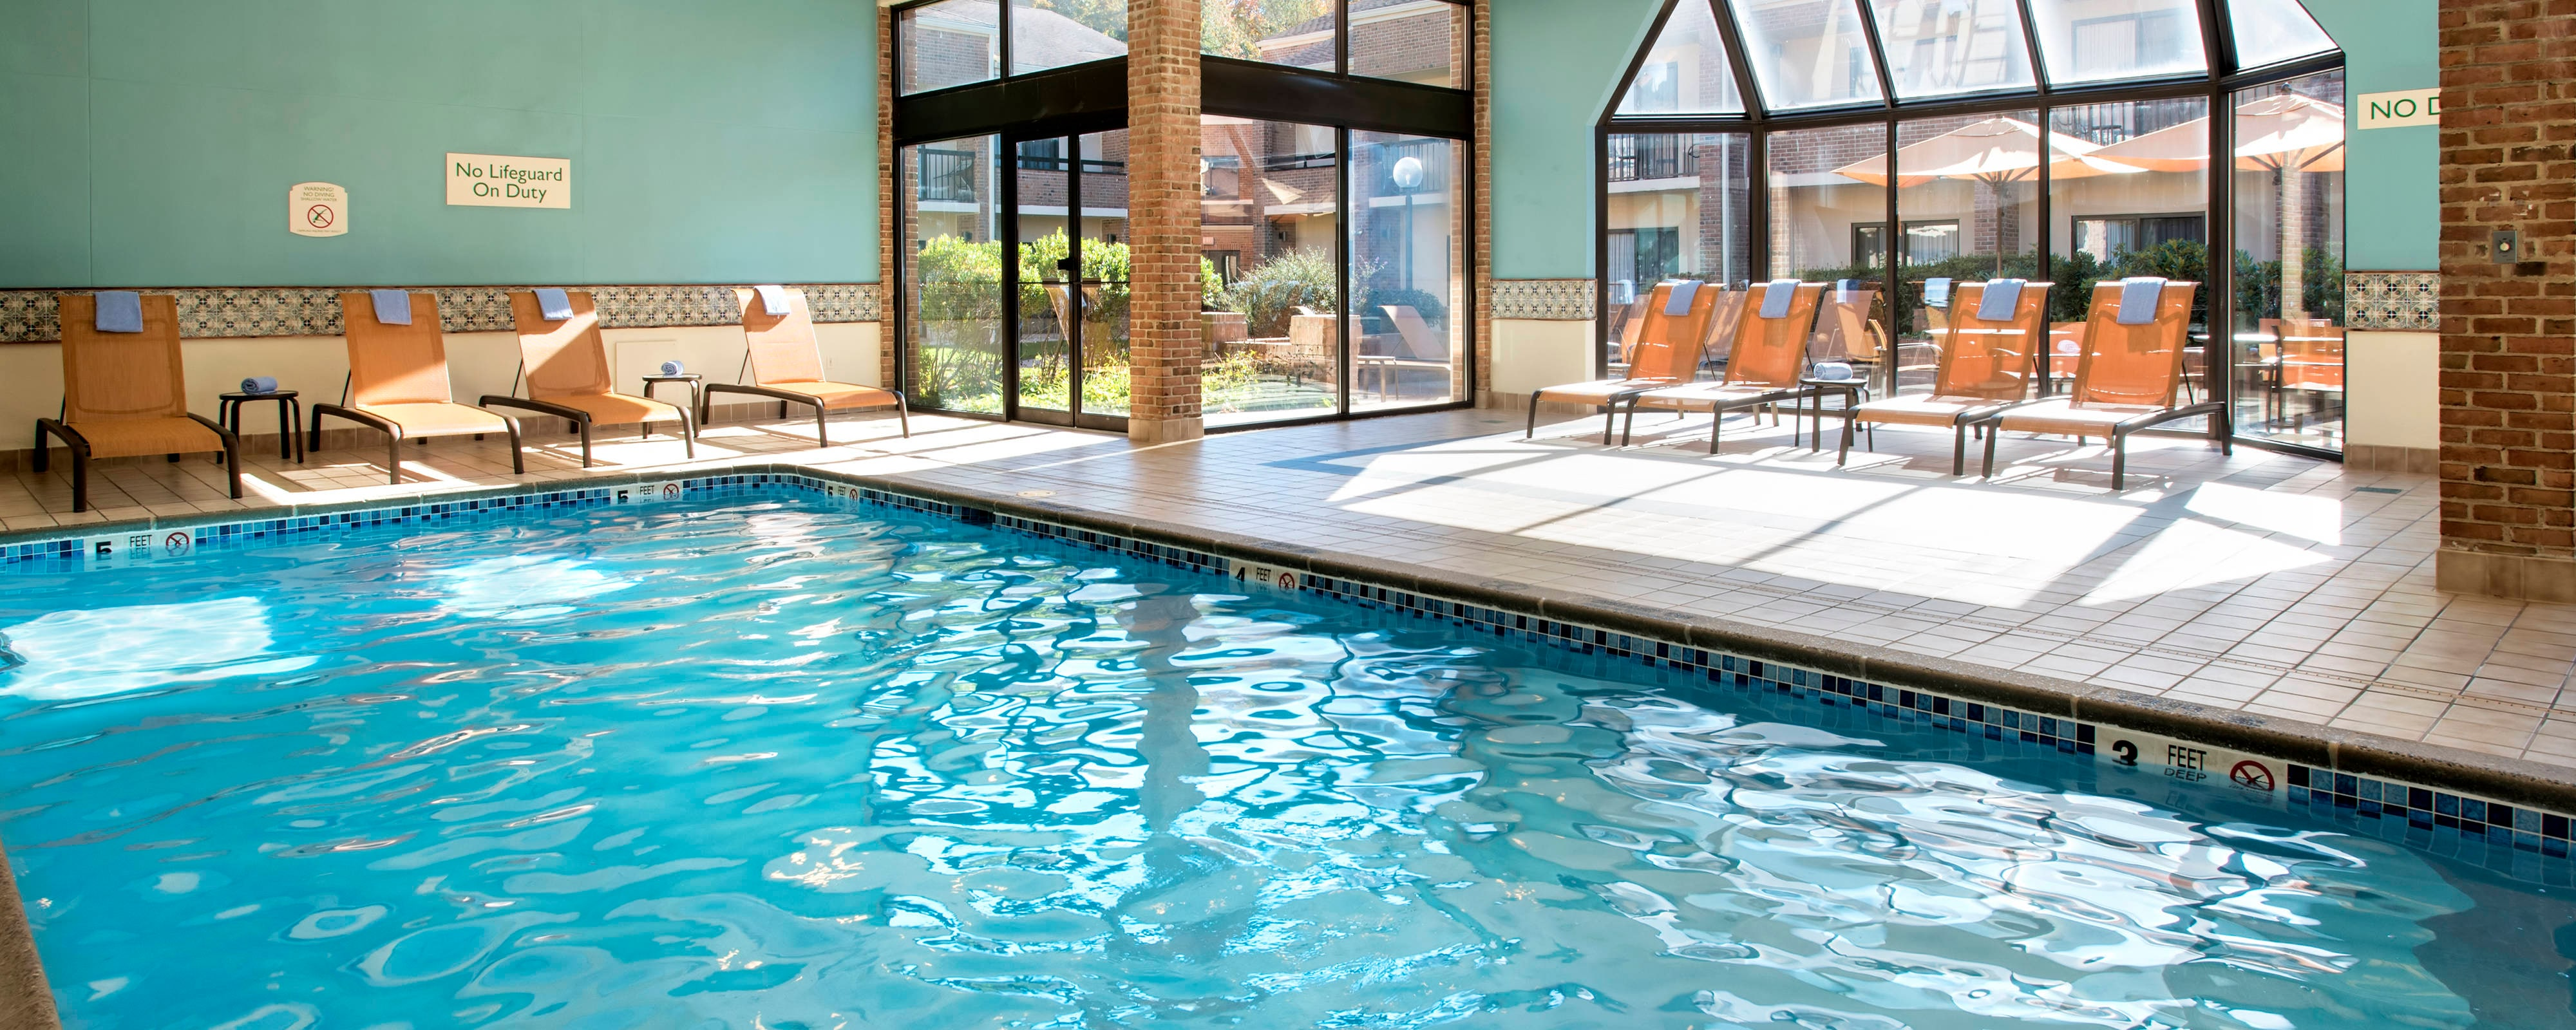 Windsor CT hotels with pool